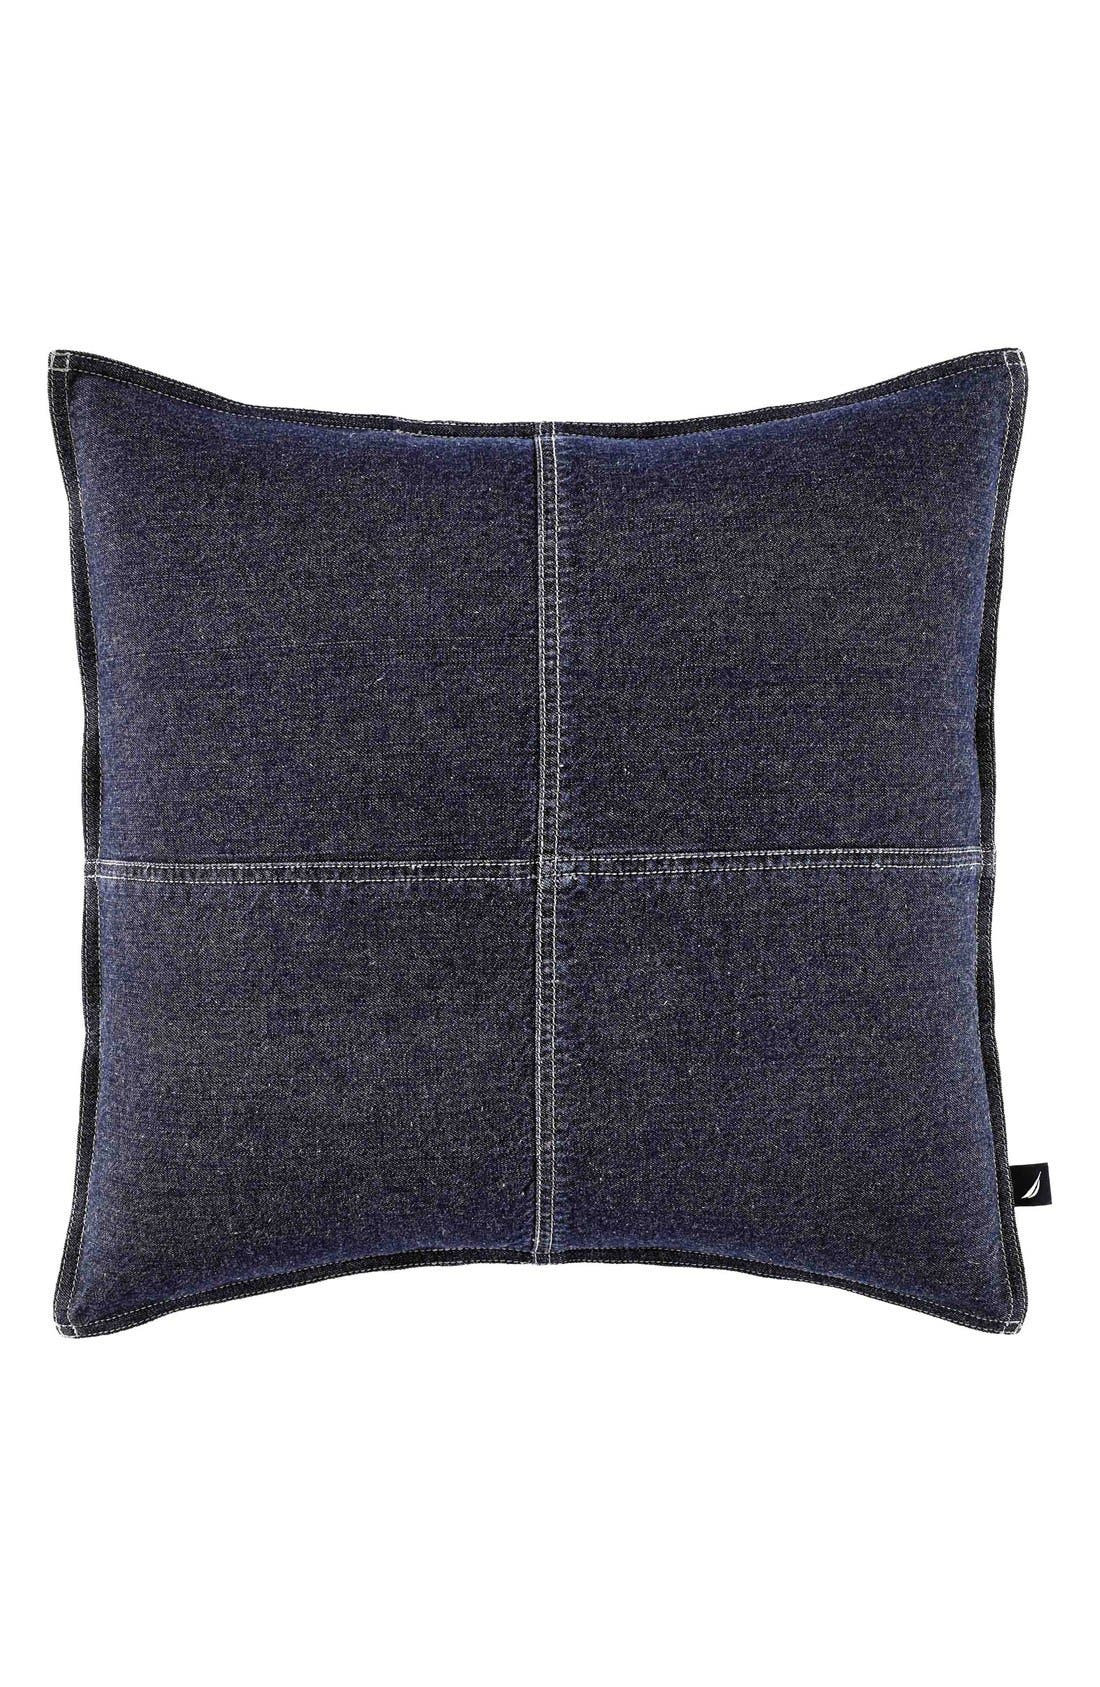 Alternate Image 1 Selected - Nautica 'Seaward' Pillow